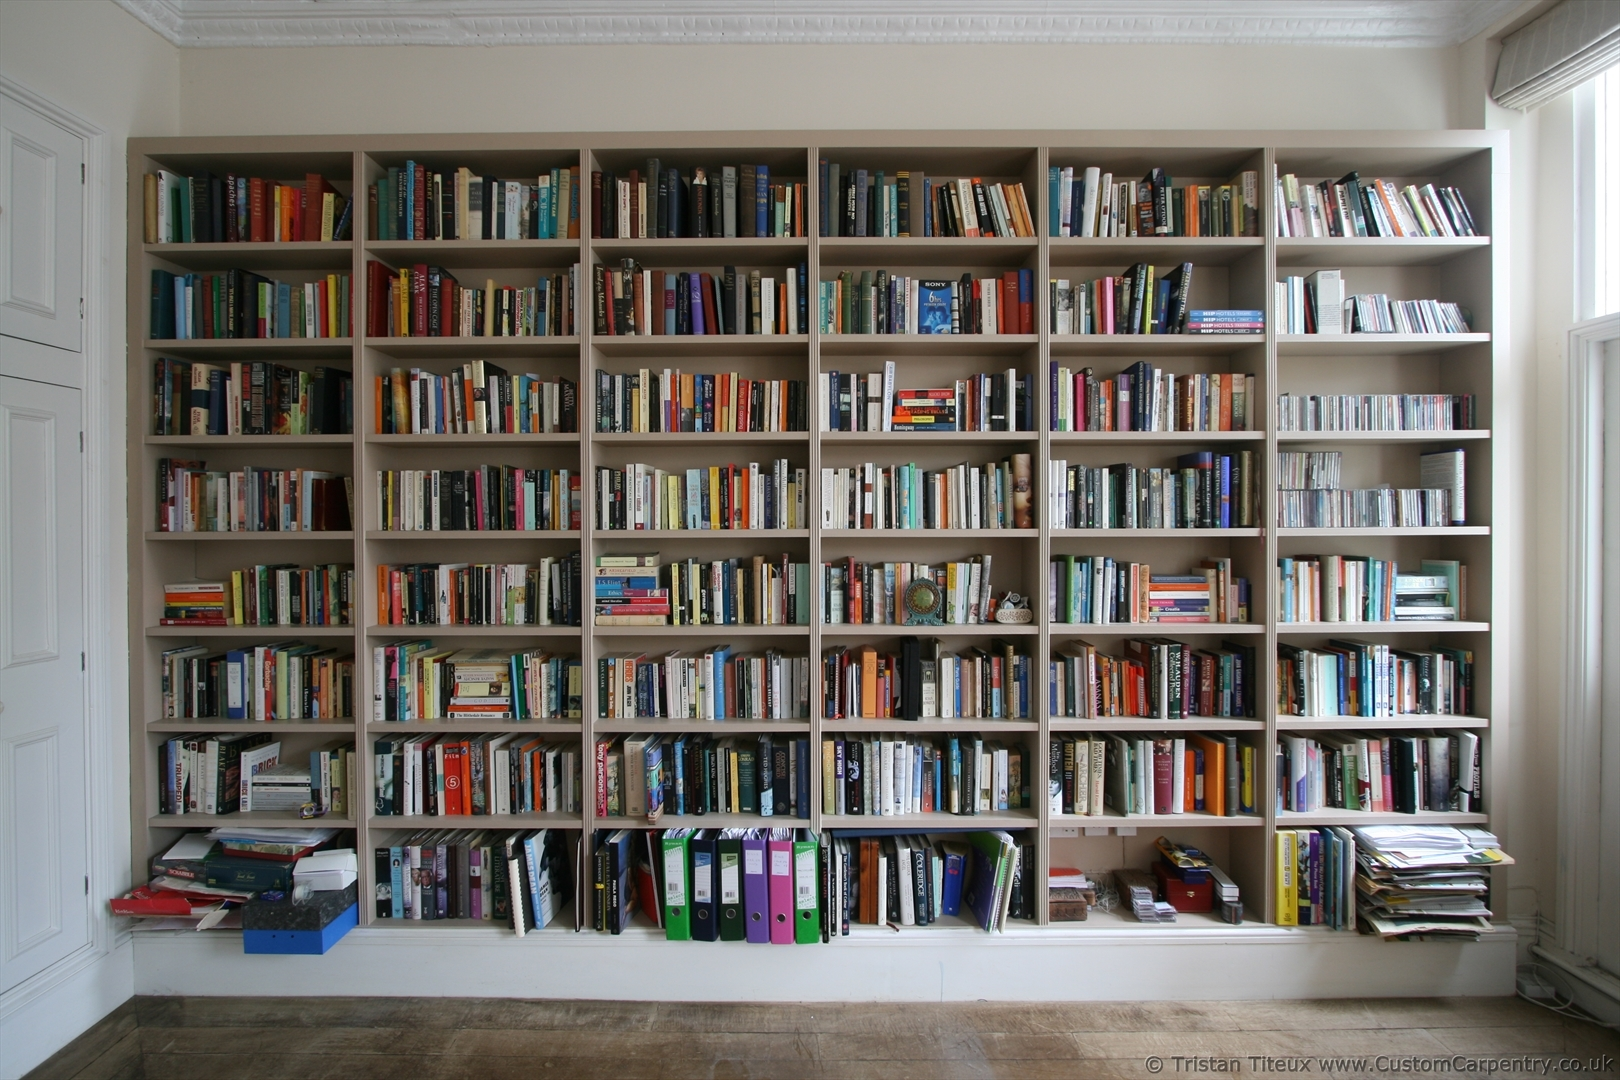 First Bespoke Fitted Bookcase I Ever Built Empatika Regarding Bespoke Bookshelves (#10 of 14)